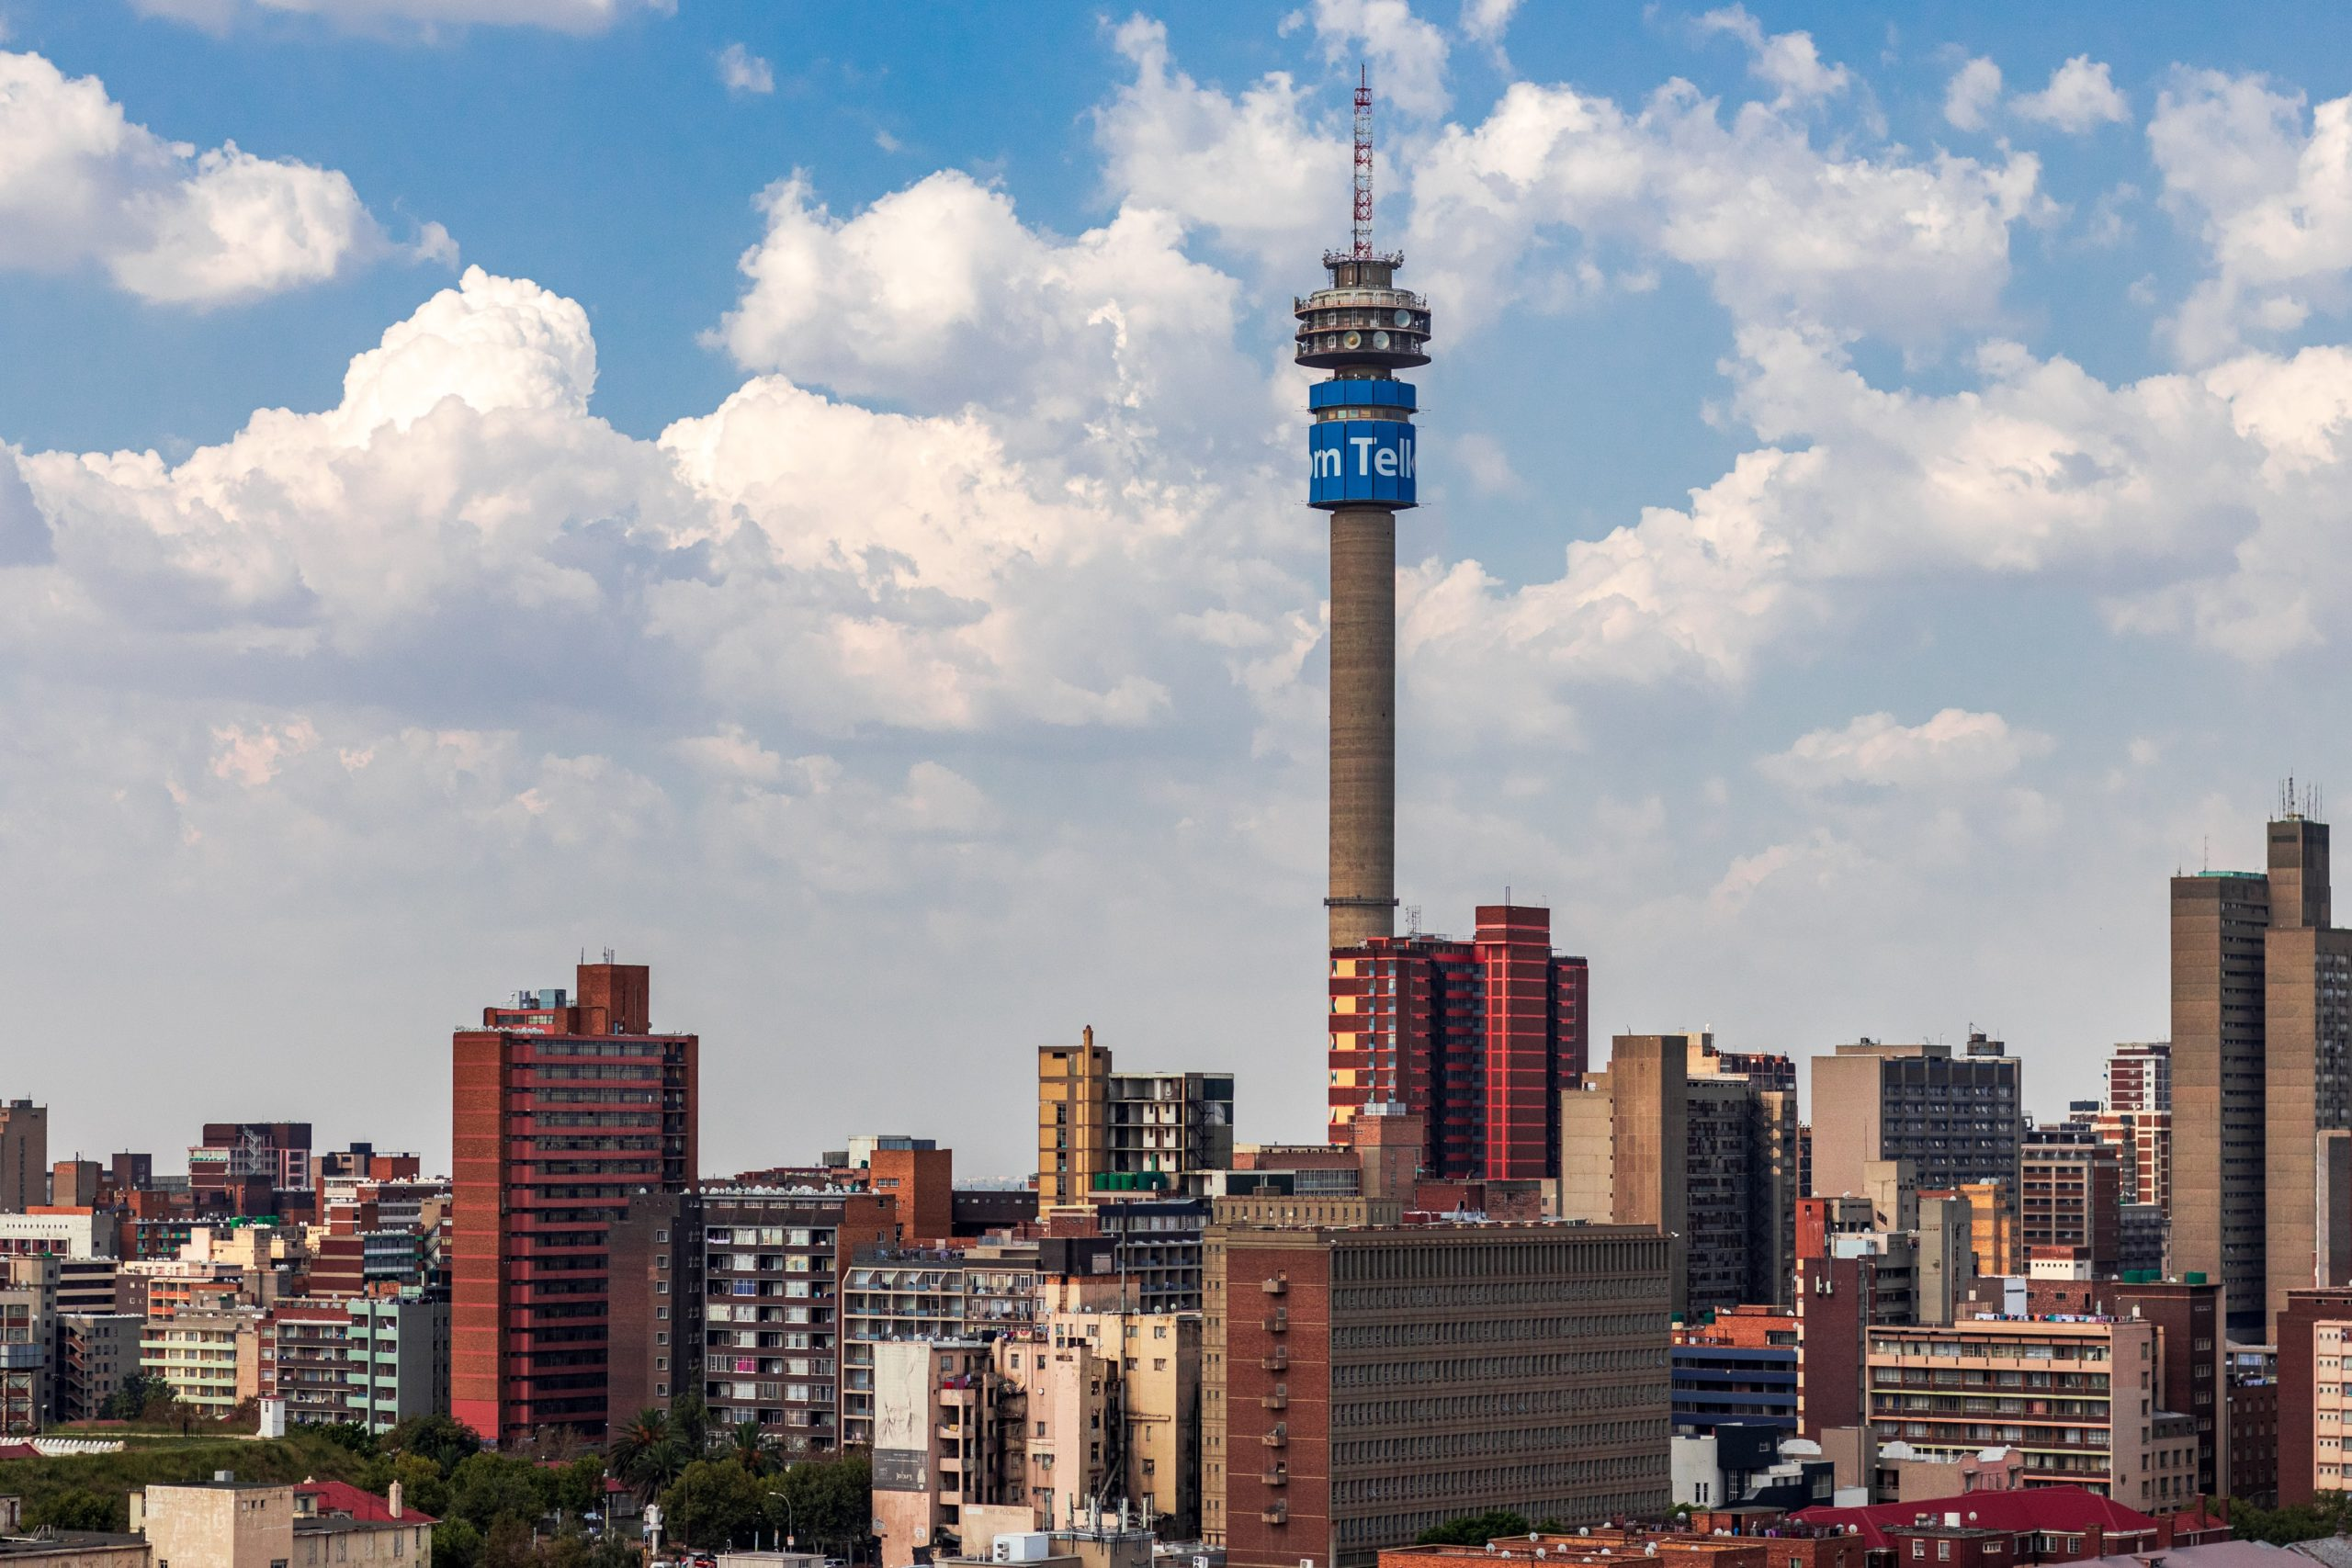 Diversity of South African Architecture